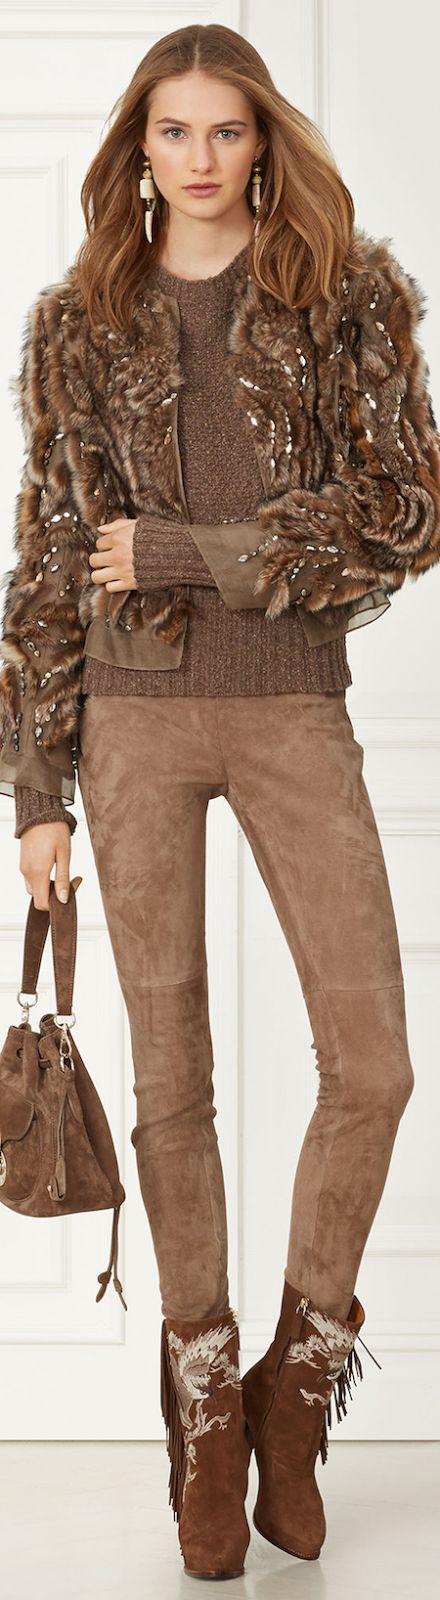 RALPH LAUREN CARMEN SHEARLING-TRIM JACKET Fall 2015